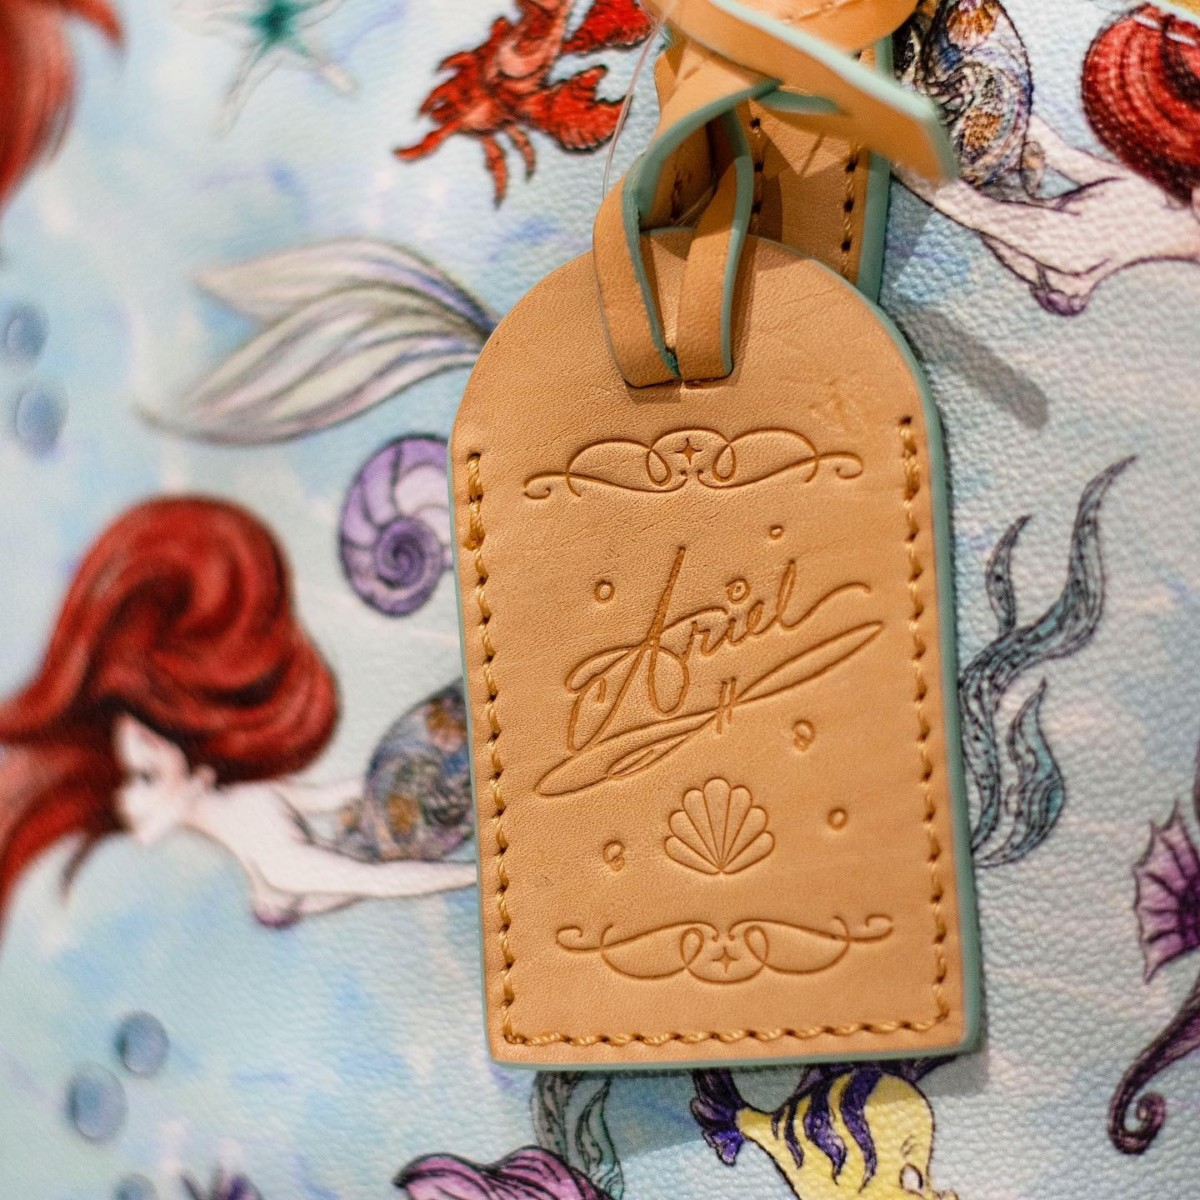 New Ariel Dooney & Bourke Collection Coming this Weekend #disneysprings 3